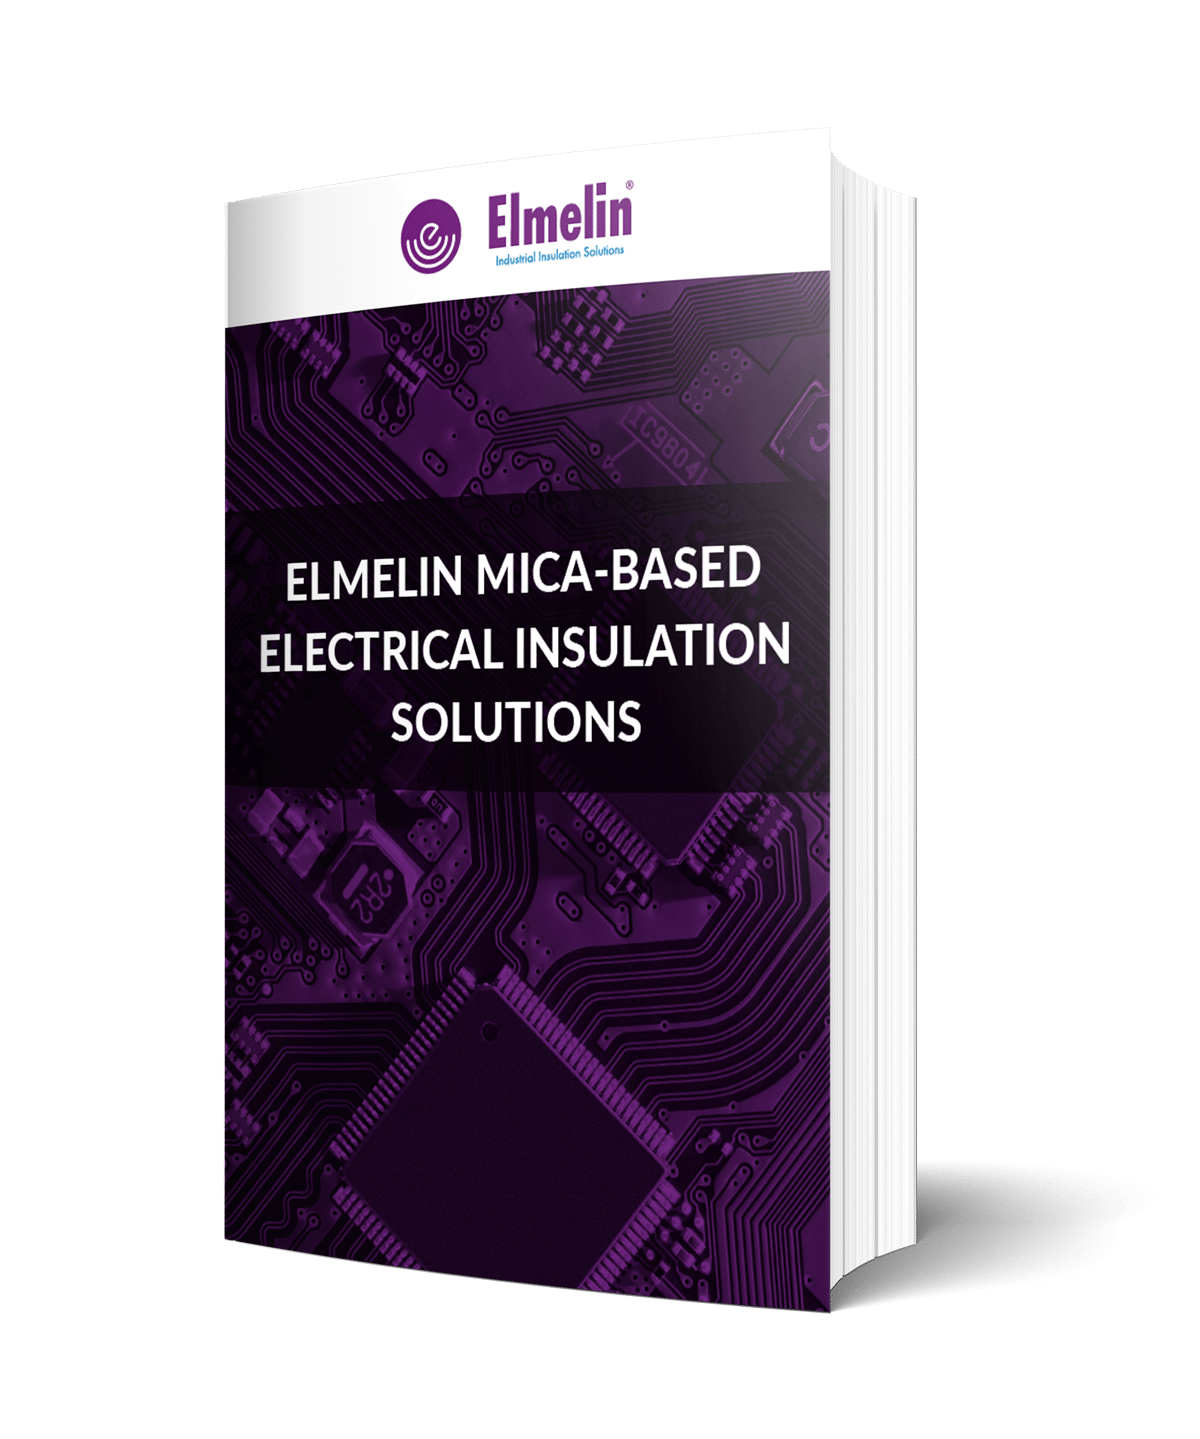 Mica-Based Electrical Insulation Solutions